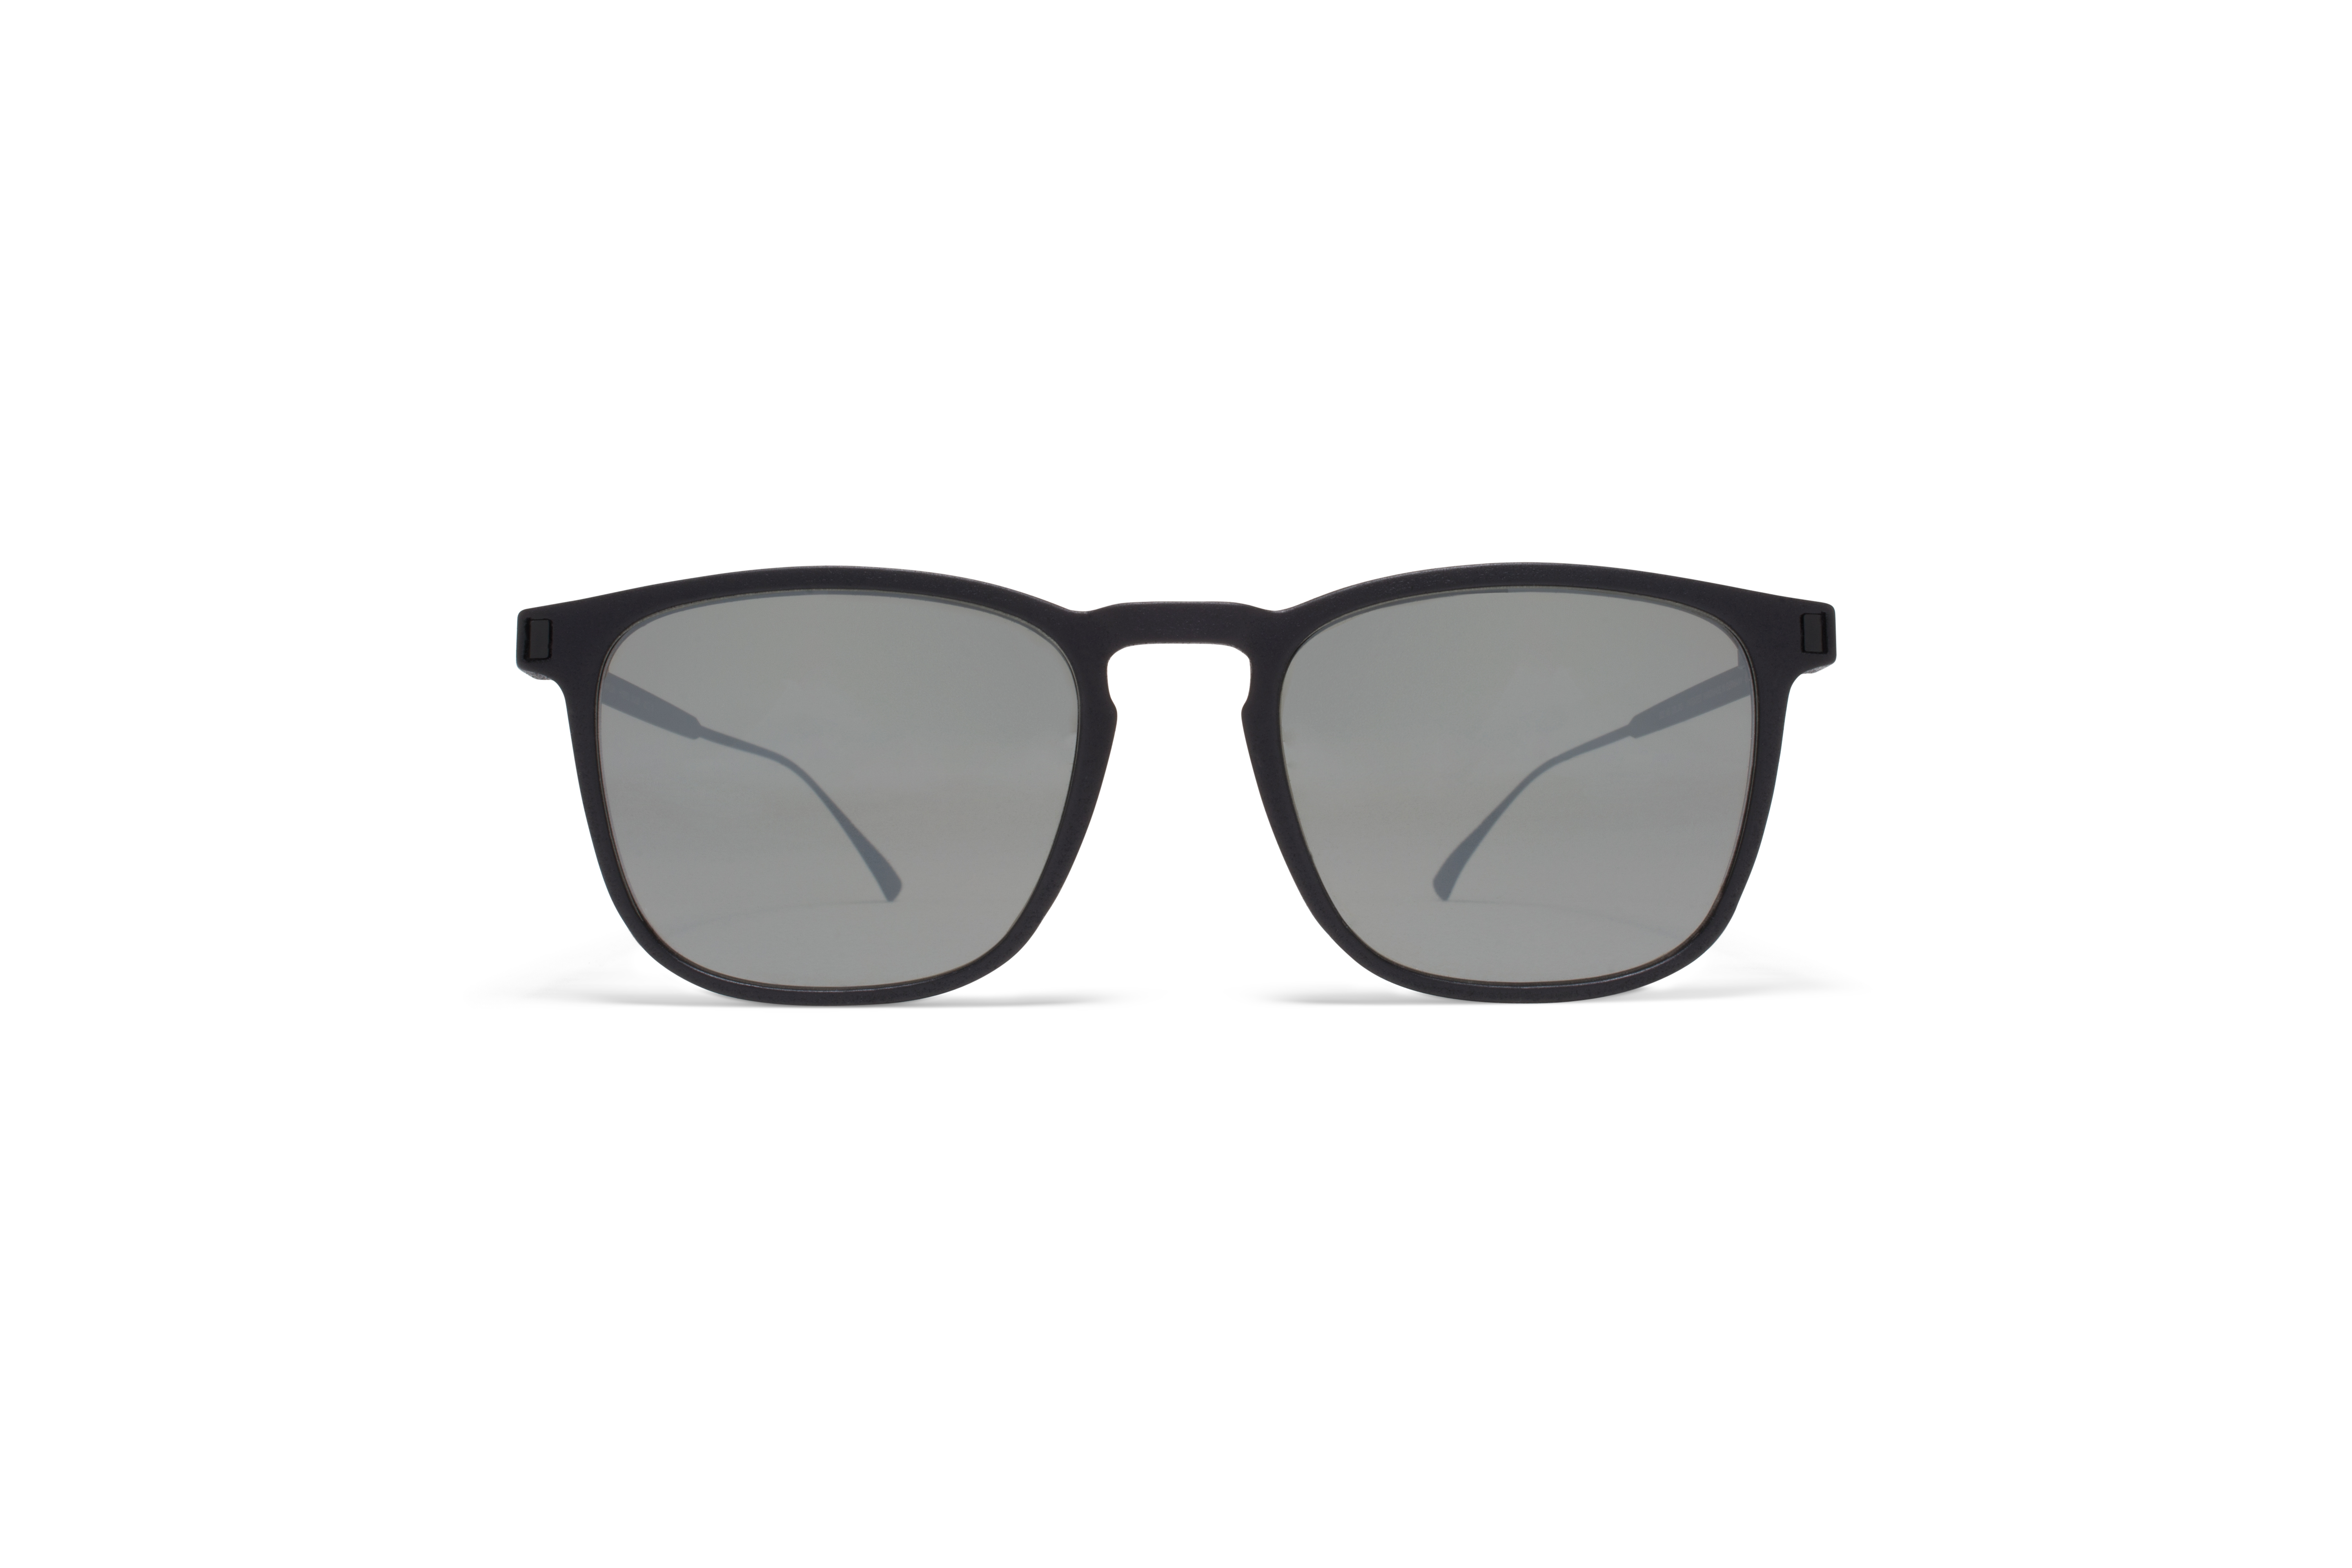 MYKITA Mylon Hybrid Sun Jujubi Mh6 Pitch Black Bla58ab1681be71b